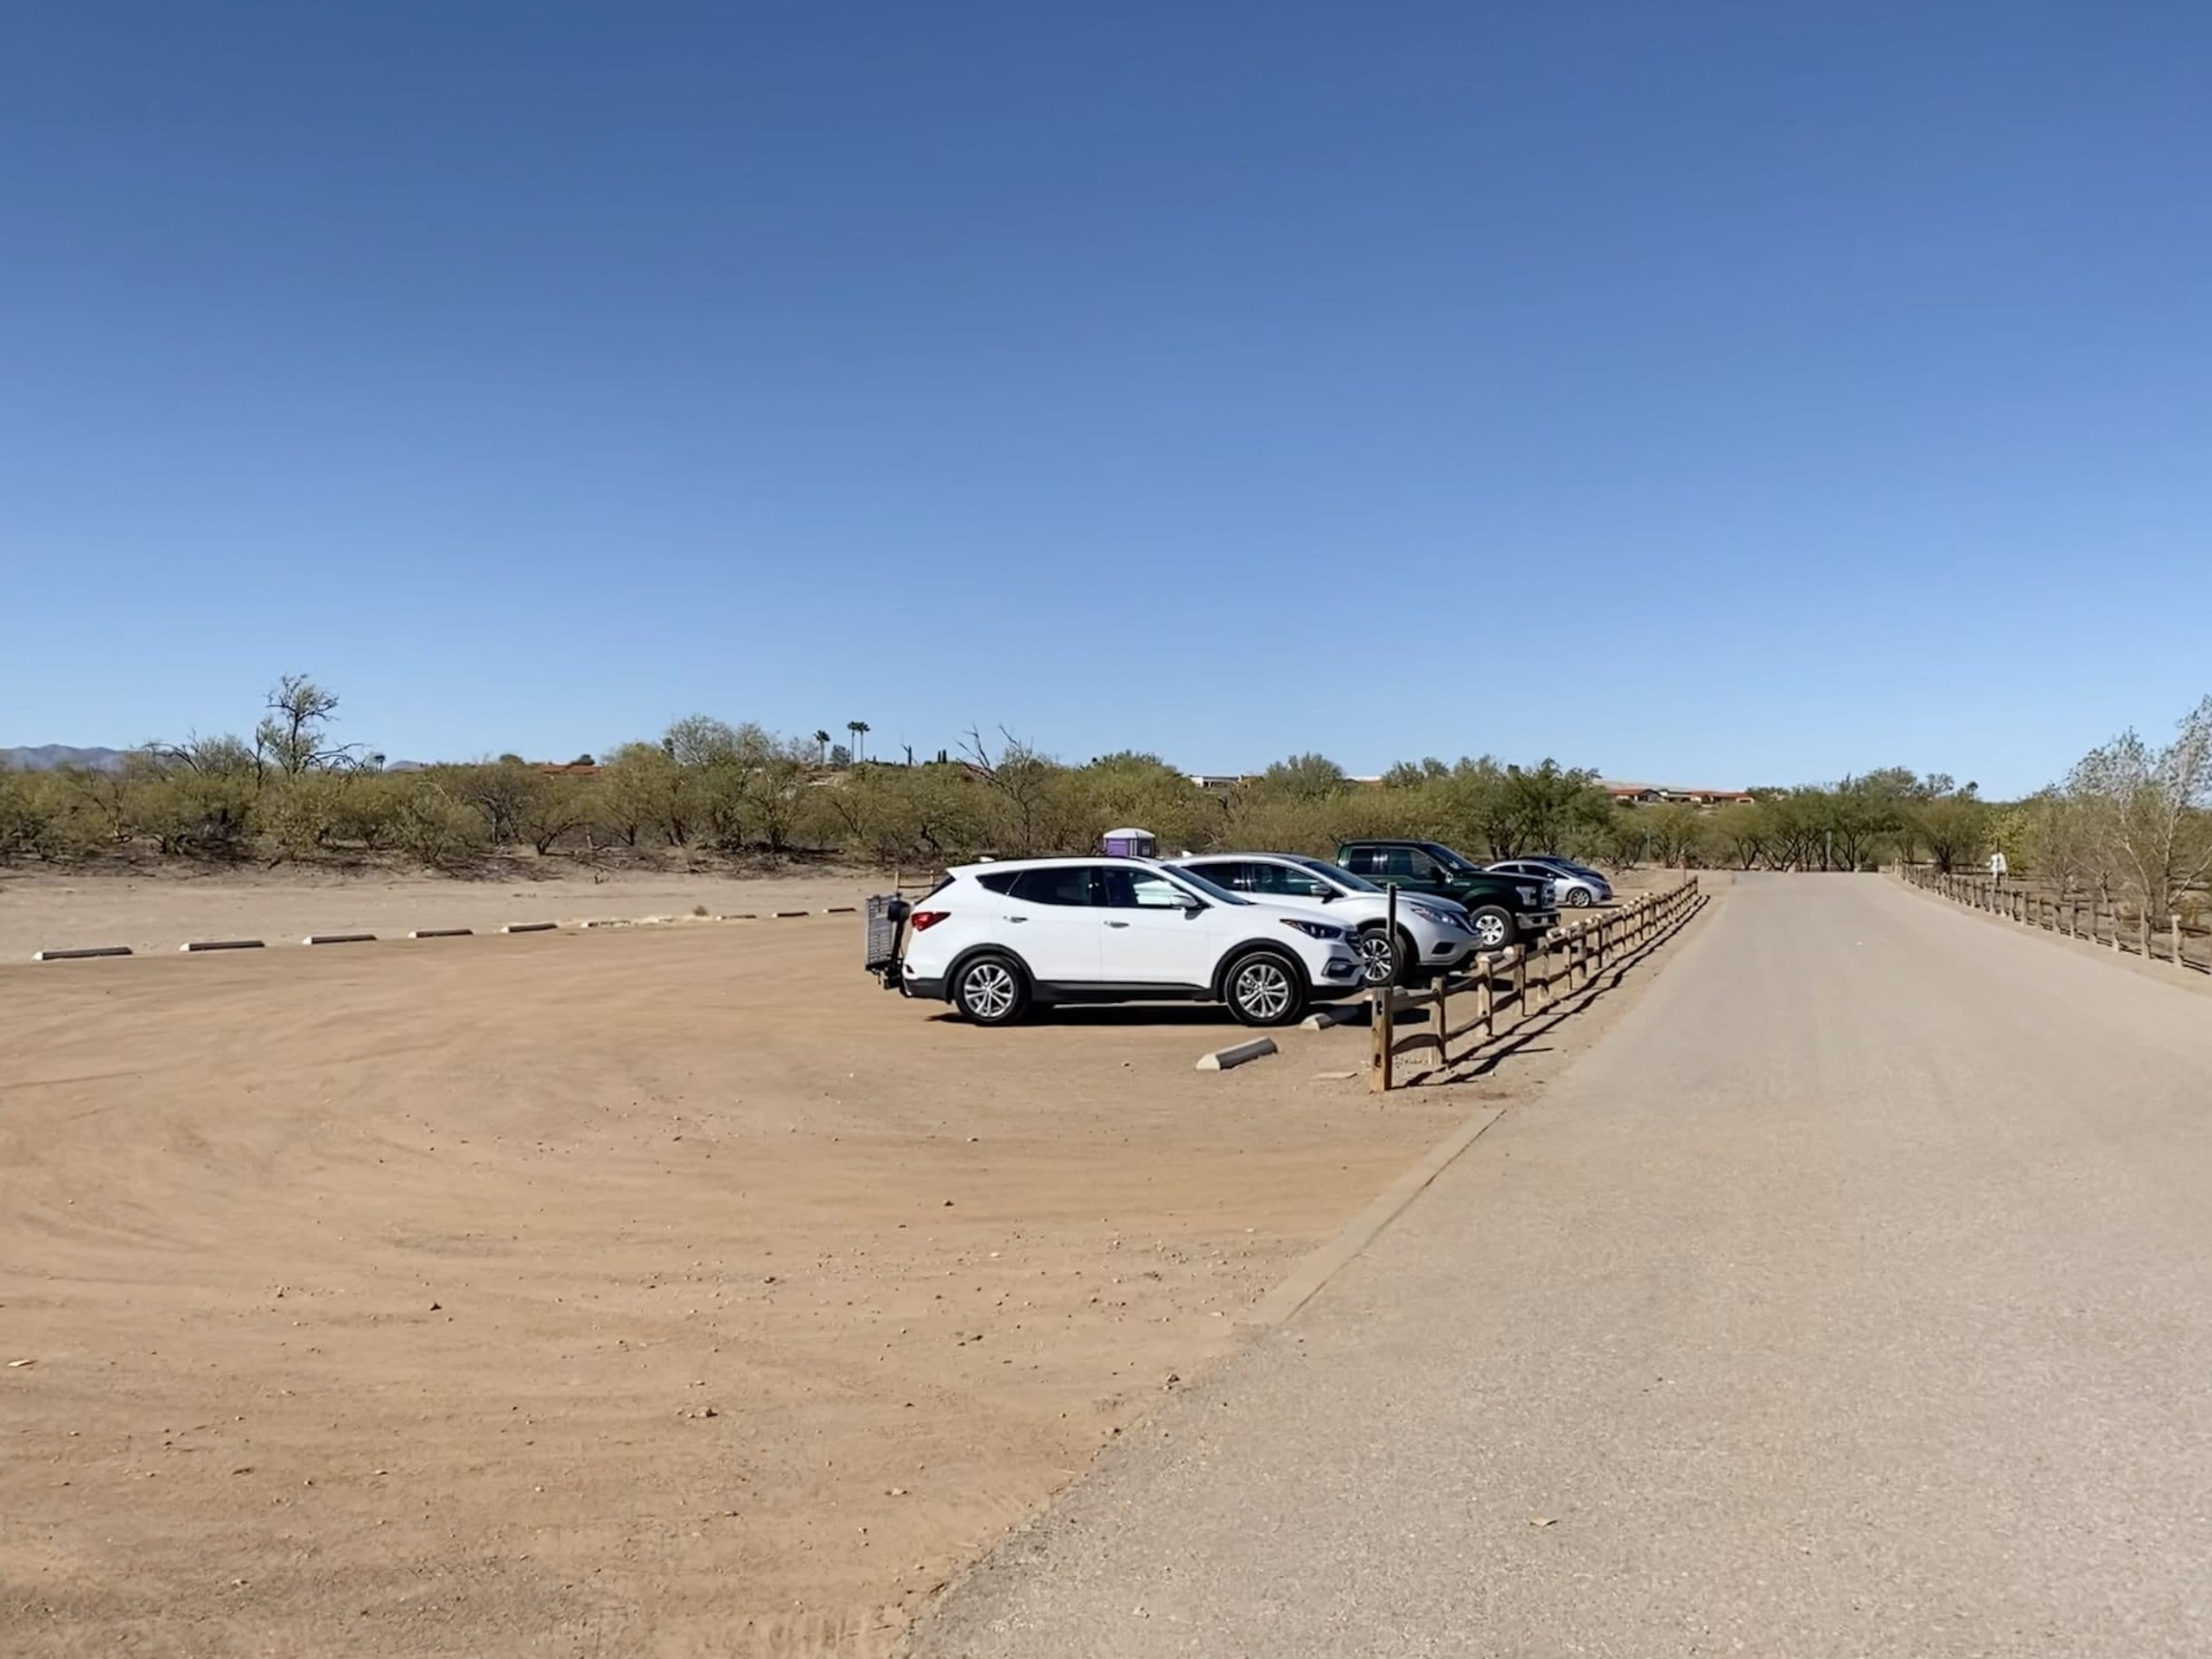 The parking area for the Devils Cash Box gravel ride on the Dirty Freehub website.